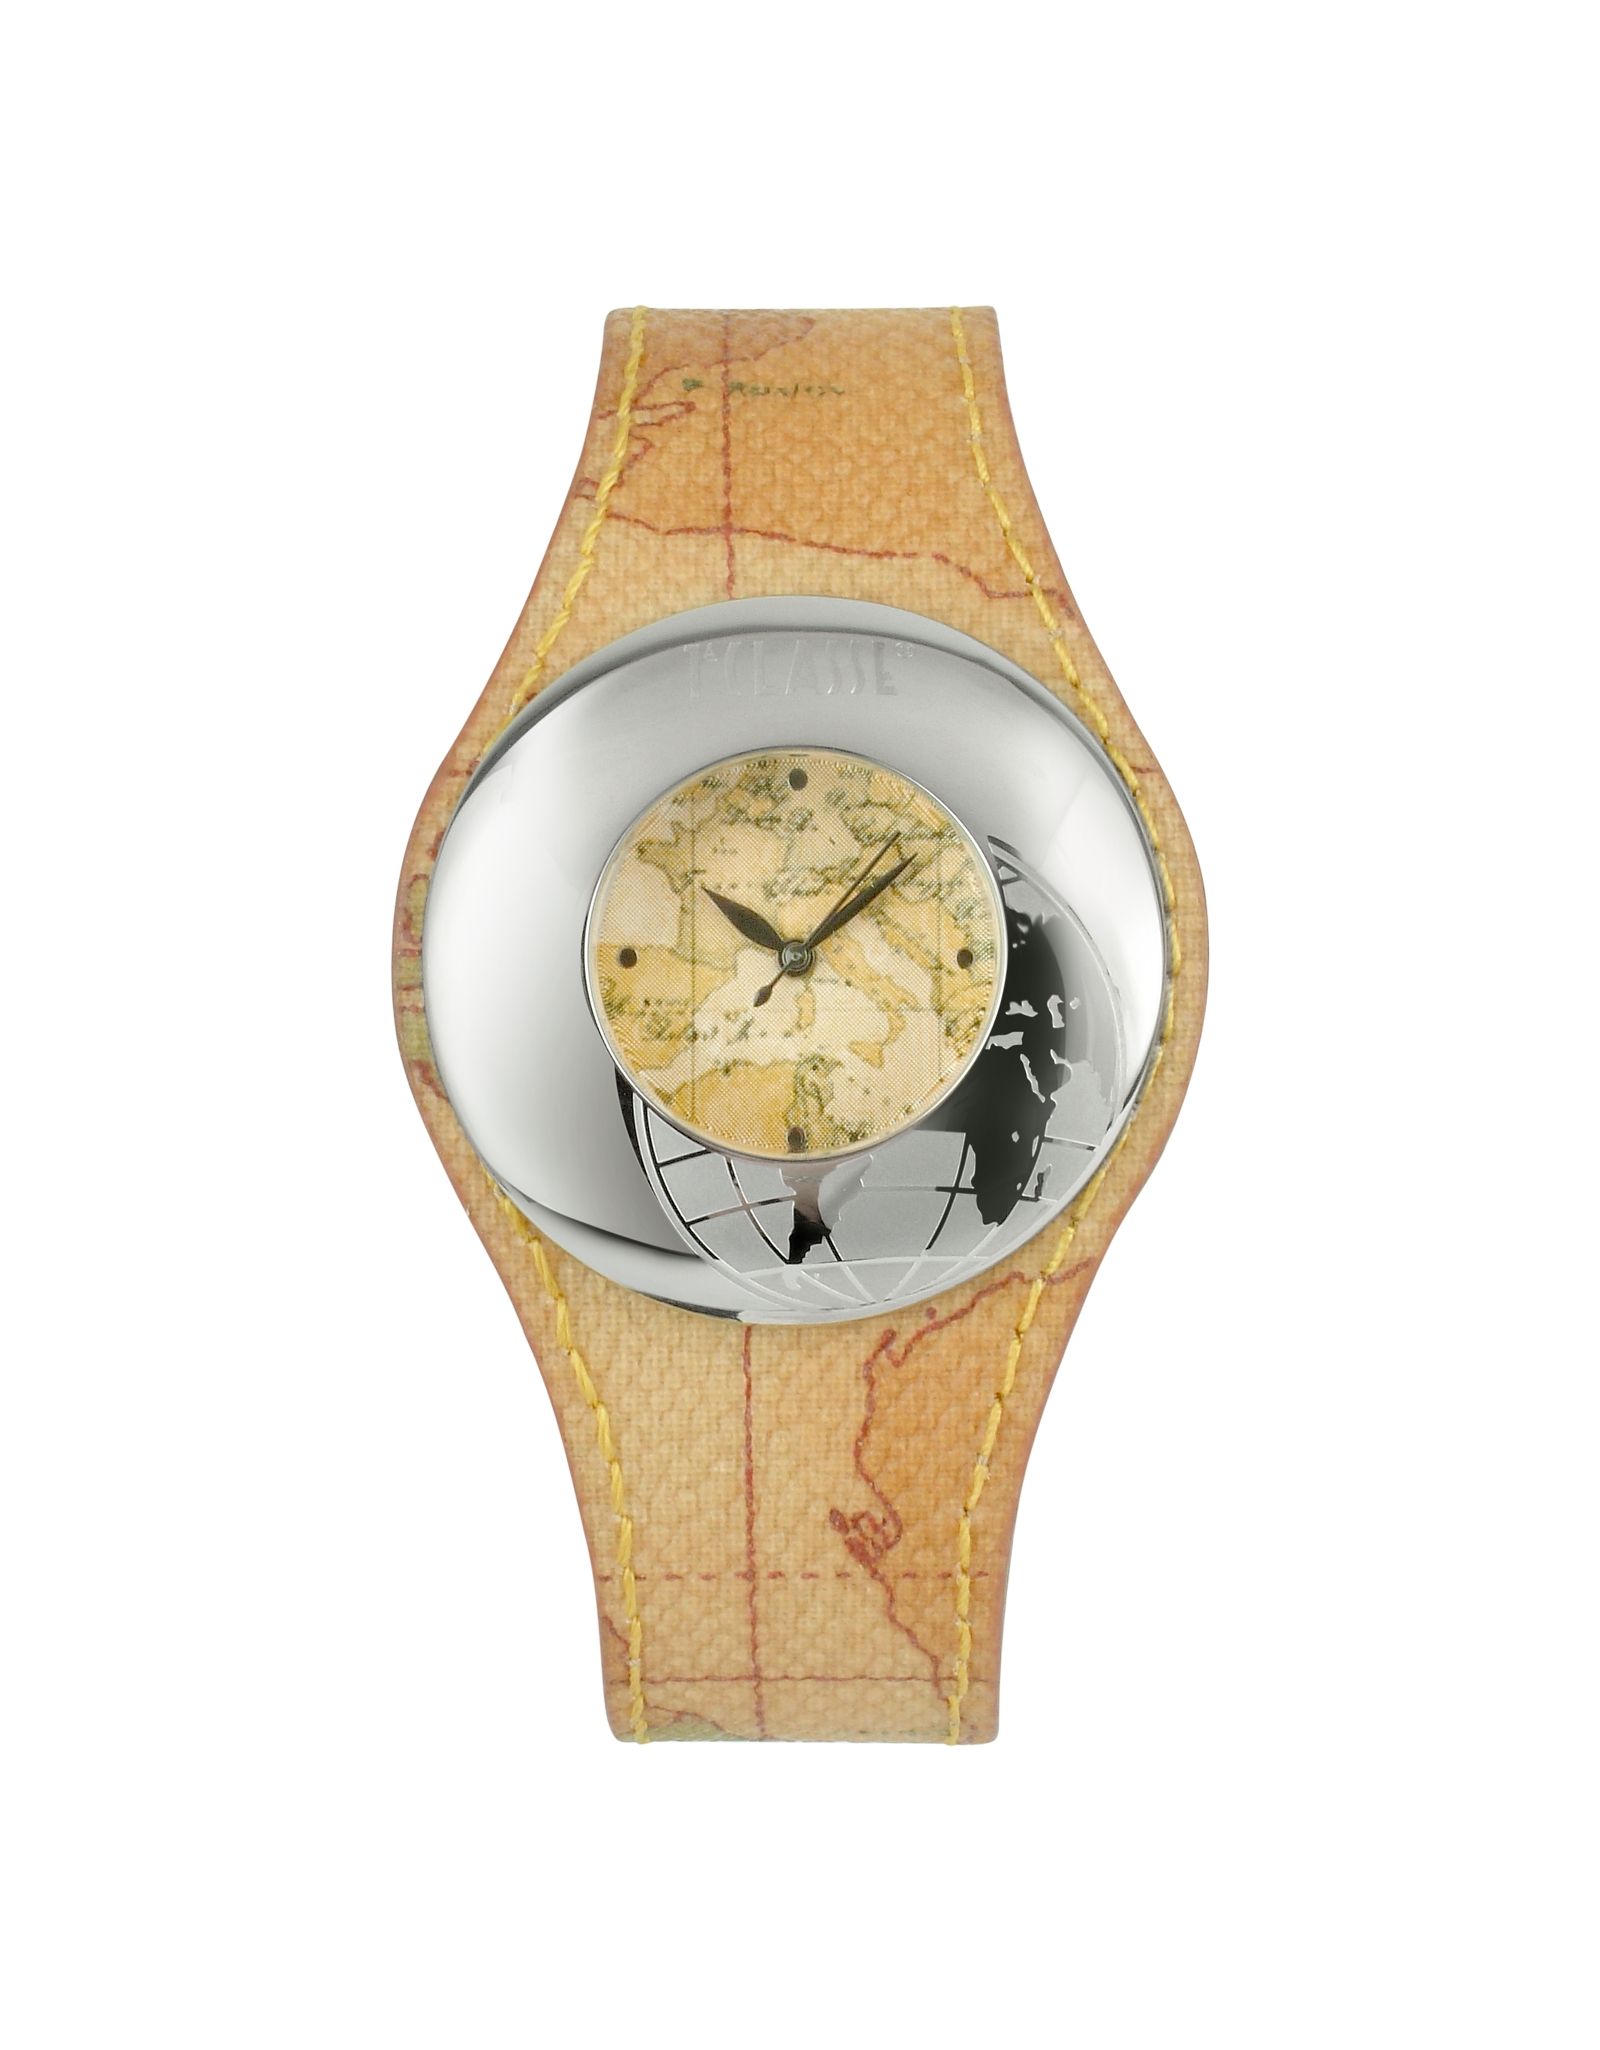 2014 10 01 archive also Kreayshawn Talks Collabos Group Hugs And More likewise Alviero Martini 1a Classe 1a Prima Classe Ladies Geo Dial And Strap Bracelet Watch Silver likewise 62983 together with Calvin Klein Seamless Illusions Boyshorts Ignite Red. on oscar de la renta logo watch